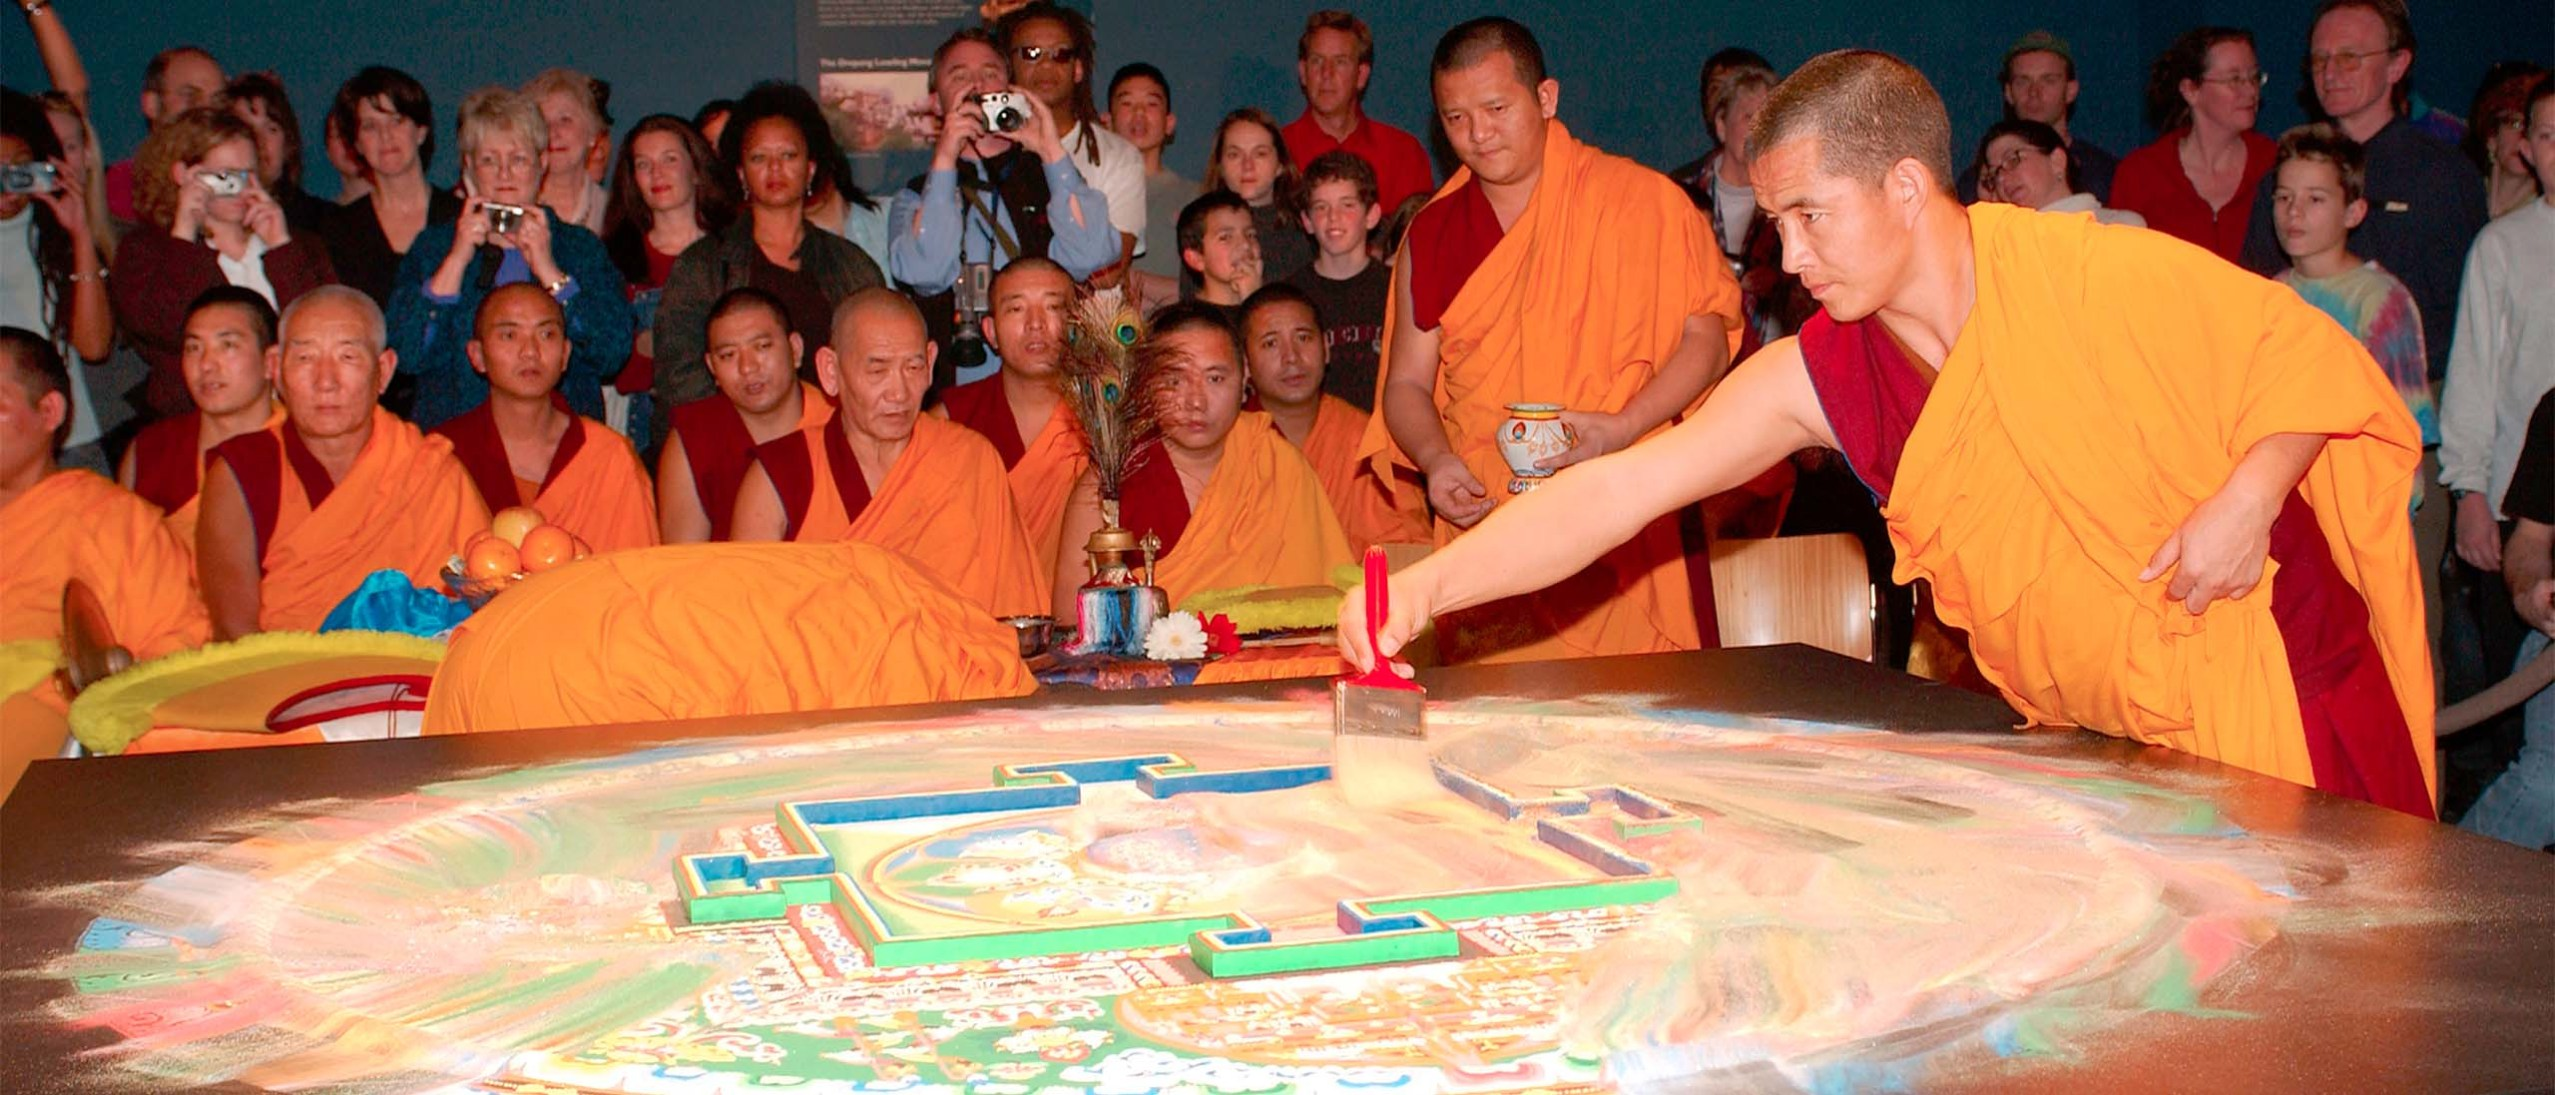 A young monk wearing gold and red robes continues drawing the brush through the mandala, destoying the image and blending the colors of the mandala, now almost completely destroyed.